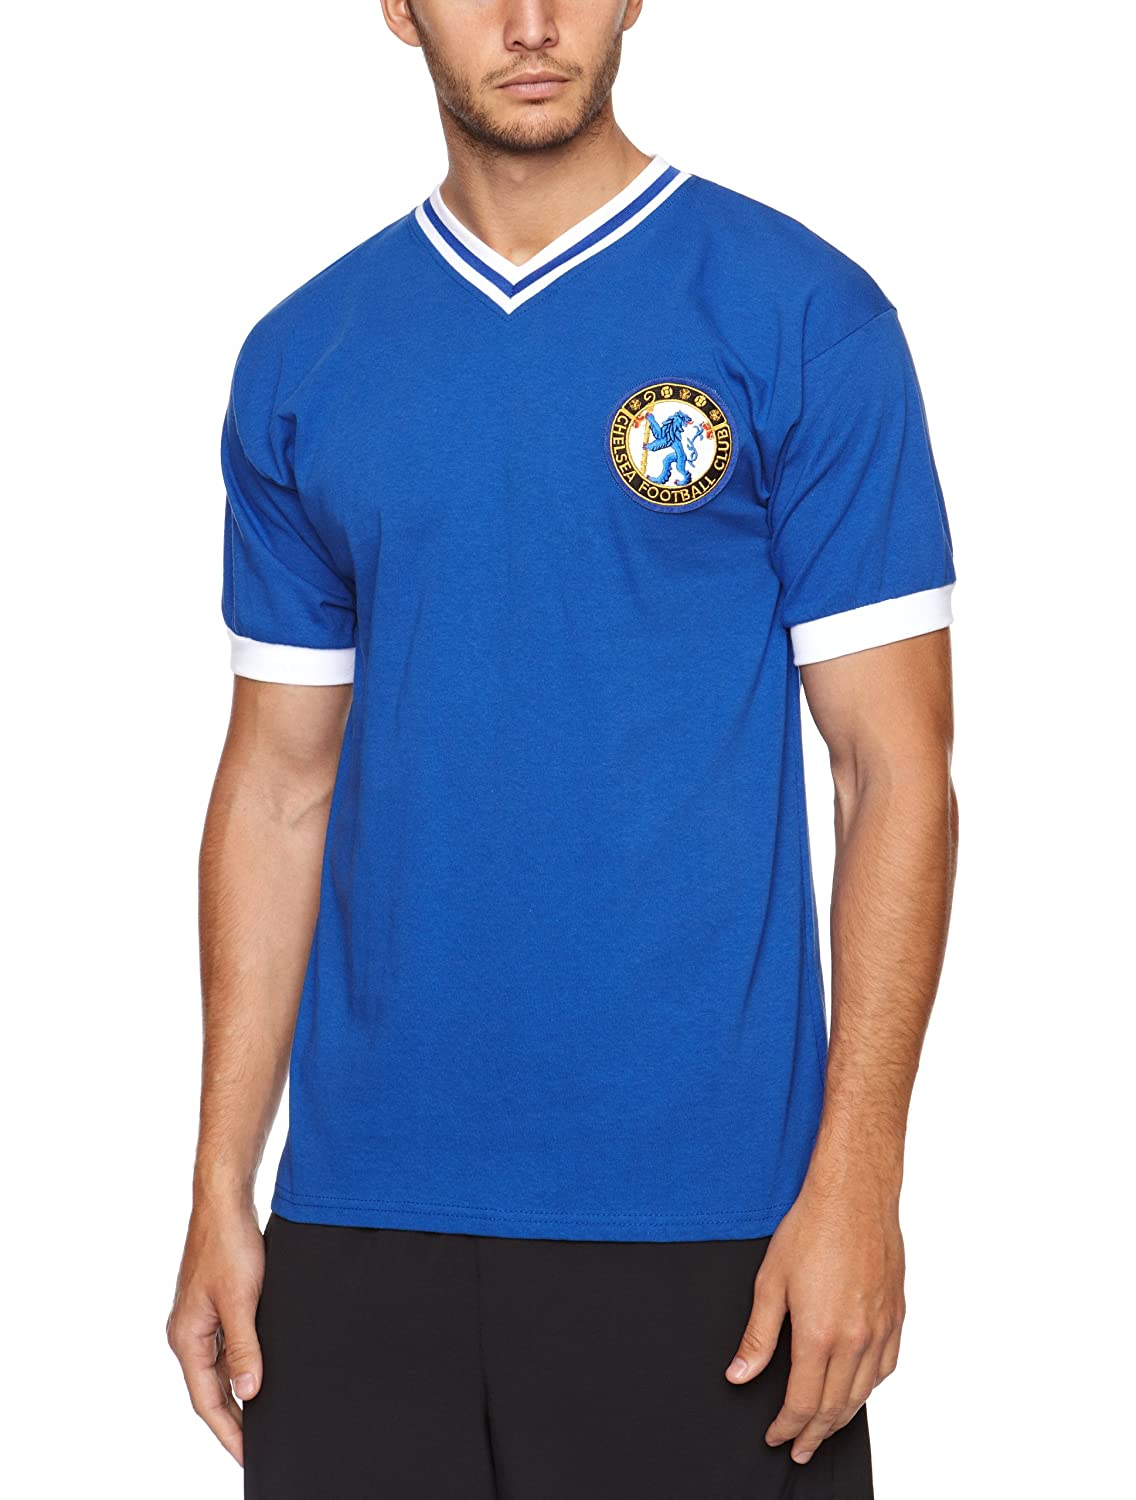 Amazon.com : XL Score Draw Official Retro Chelsea 1960 Number 8 Mens Retro Football Shirt - : Sports & Outdoors